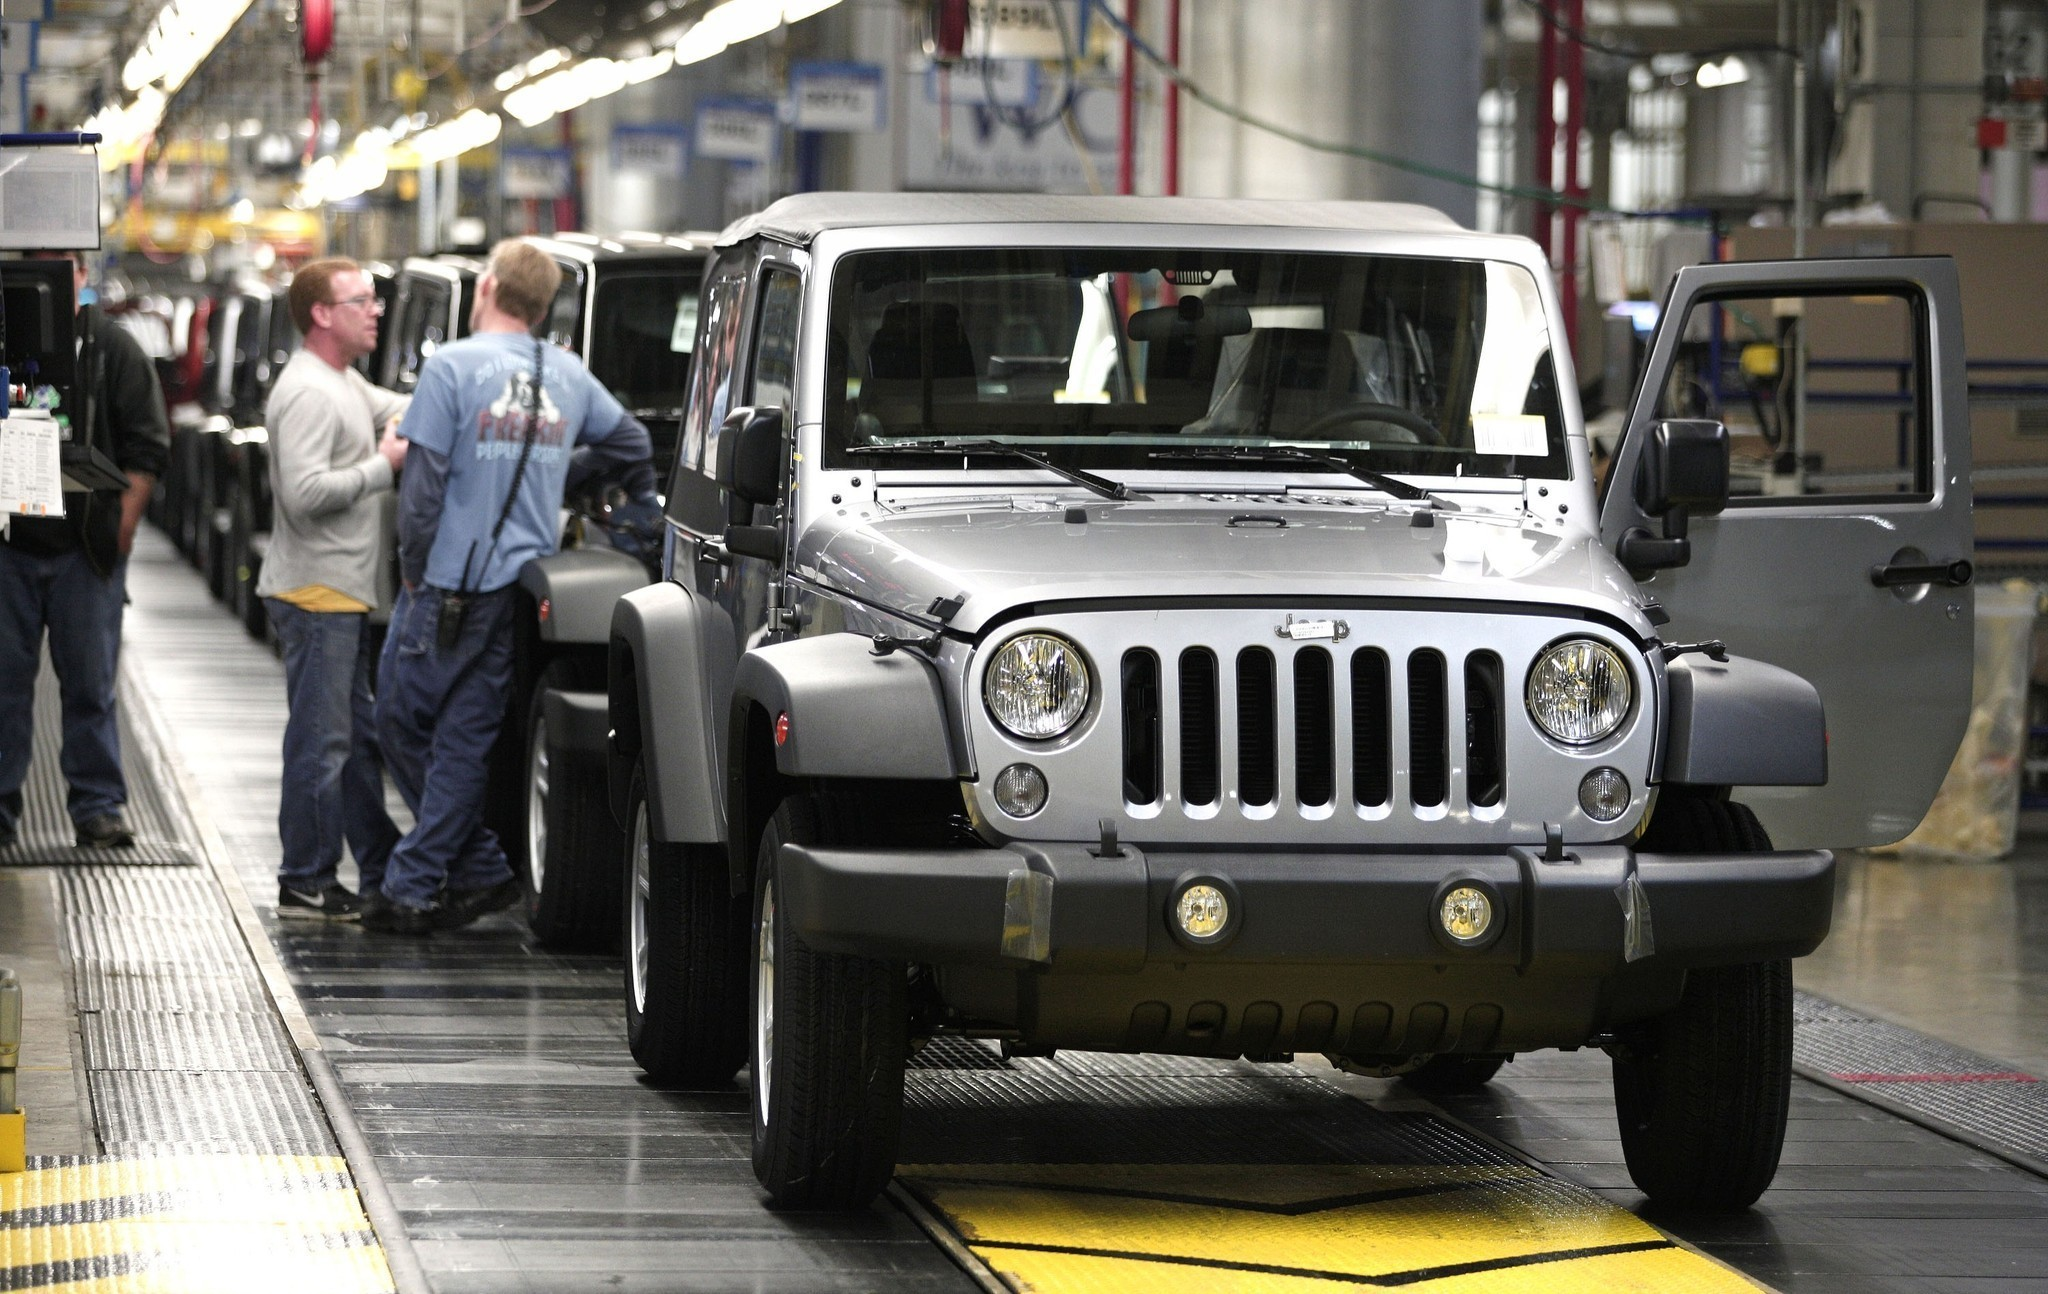 Expenses from fiat merger topple chrysler into first quarter loss la times